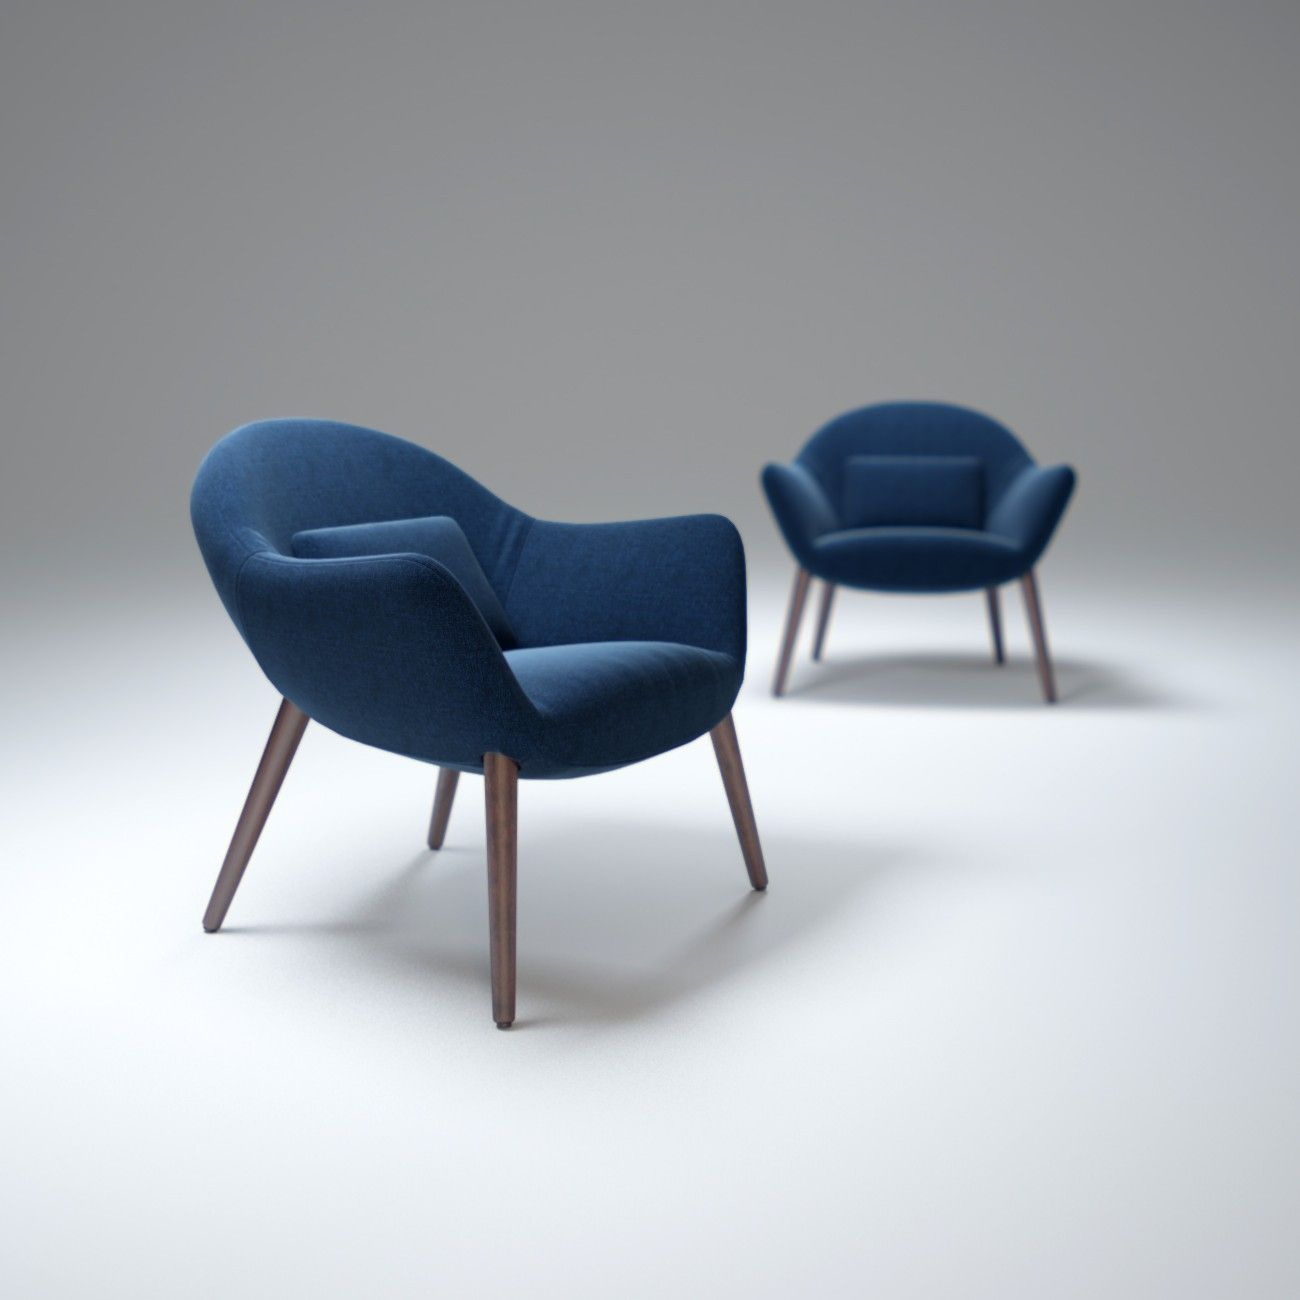 Marcel Wanders Mad Chair for Poliform & poliform armchair - Google Search | Furniture | Pinterest ...